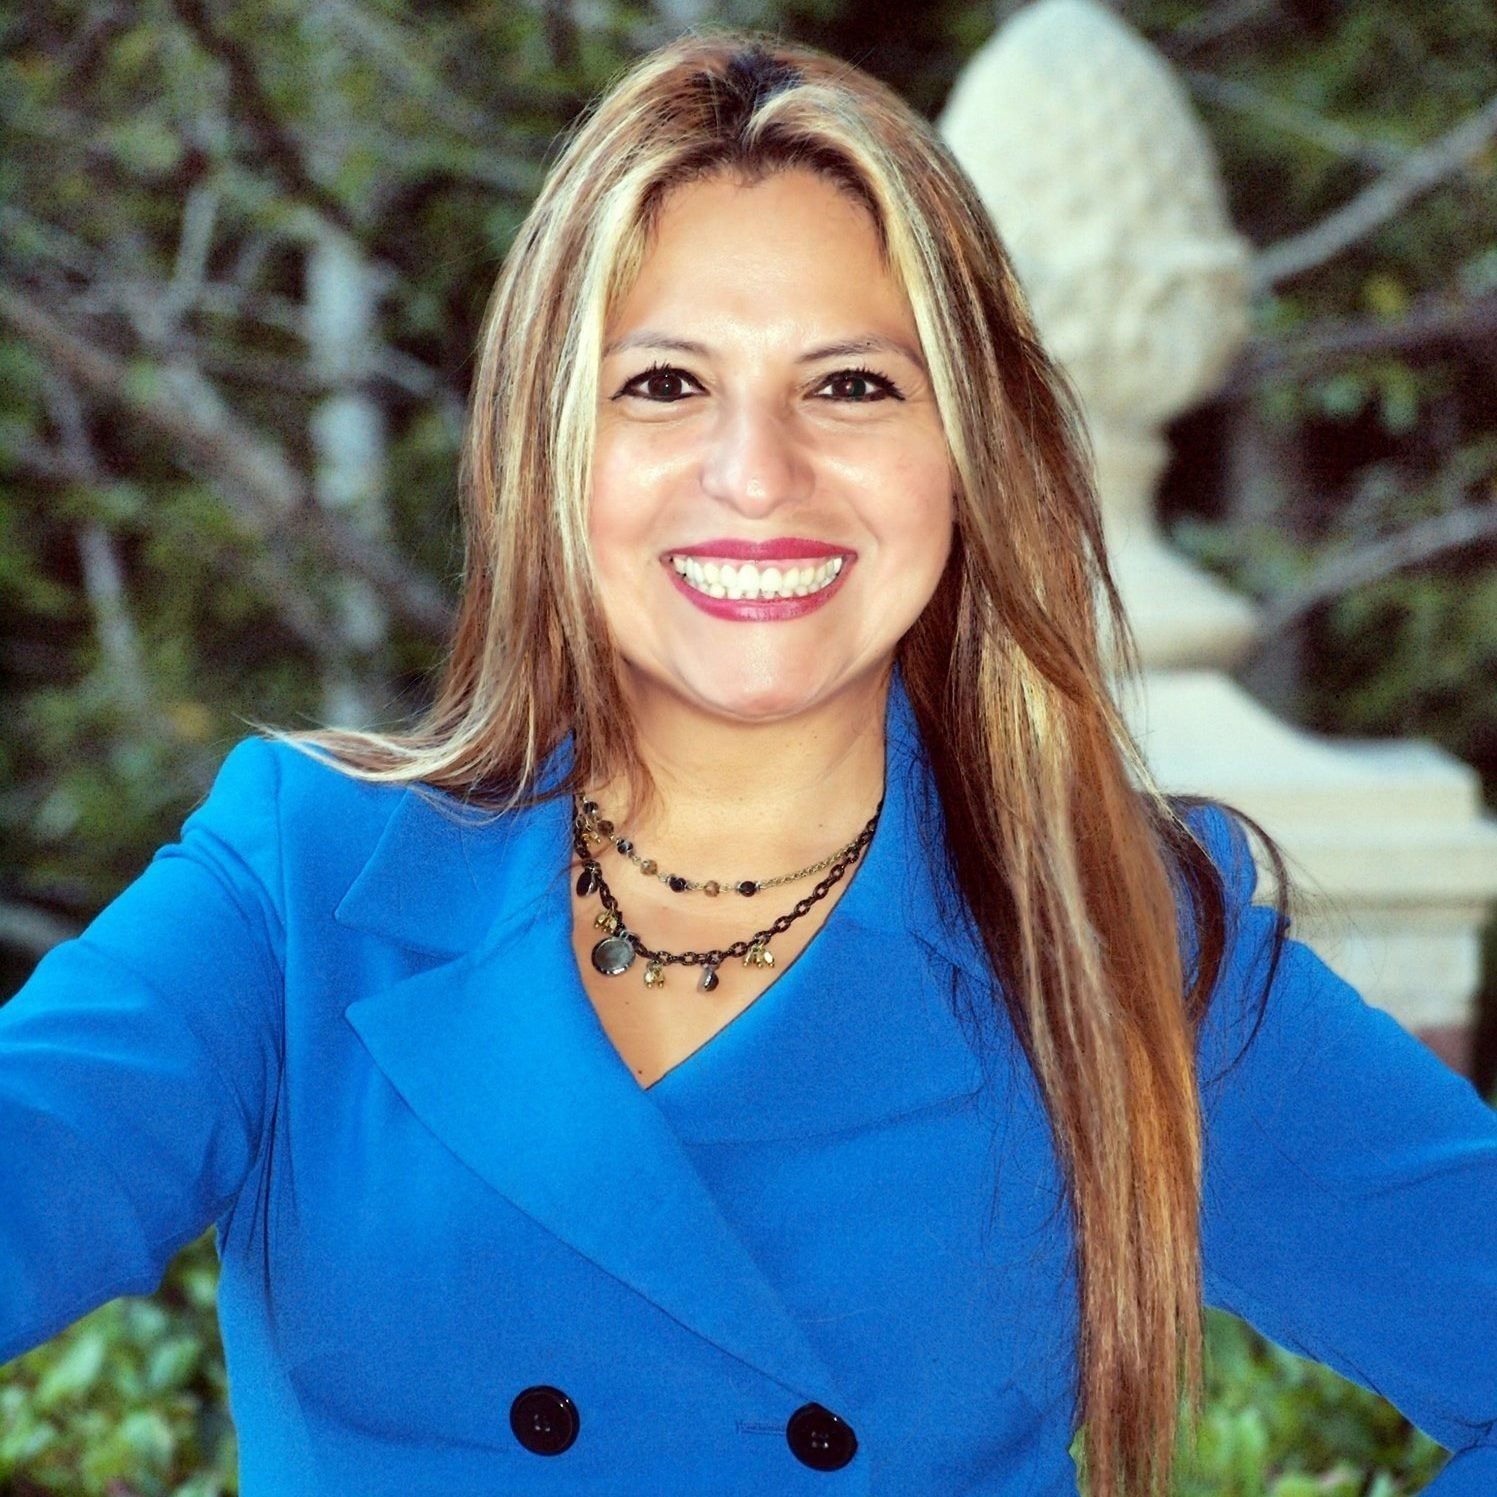 Virginia Del. Elizabeth Guzman (D) immigrated from Peru to the United States 20 years ago. On Tuesday,...